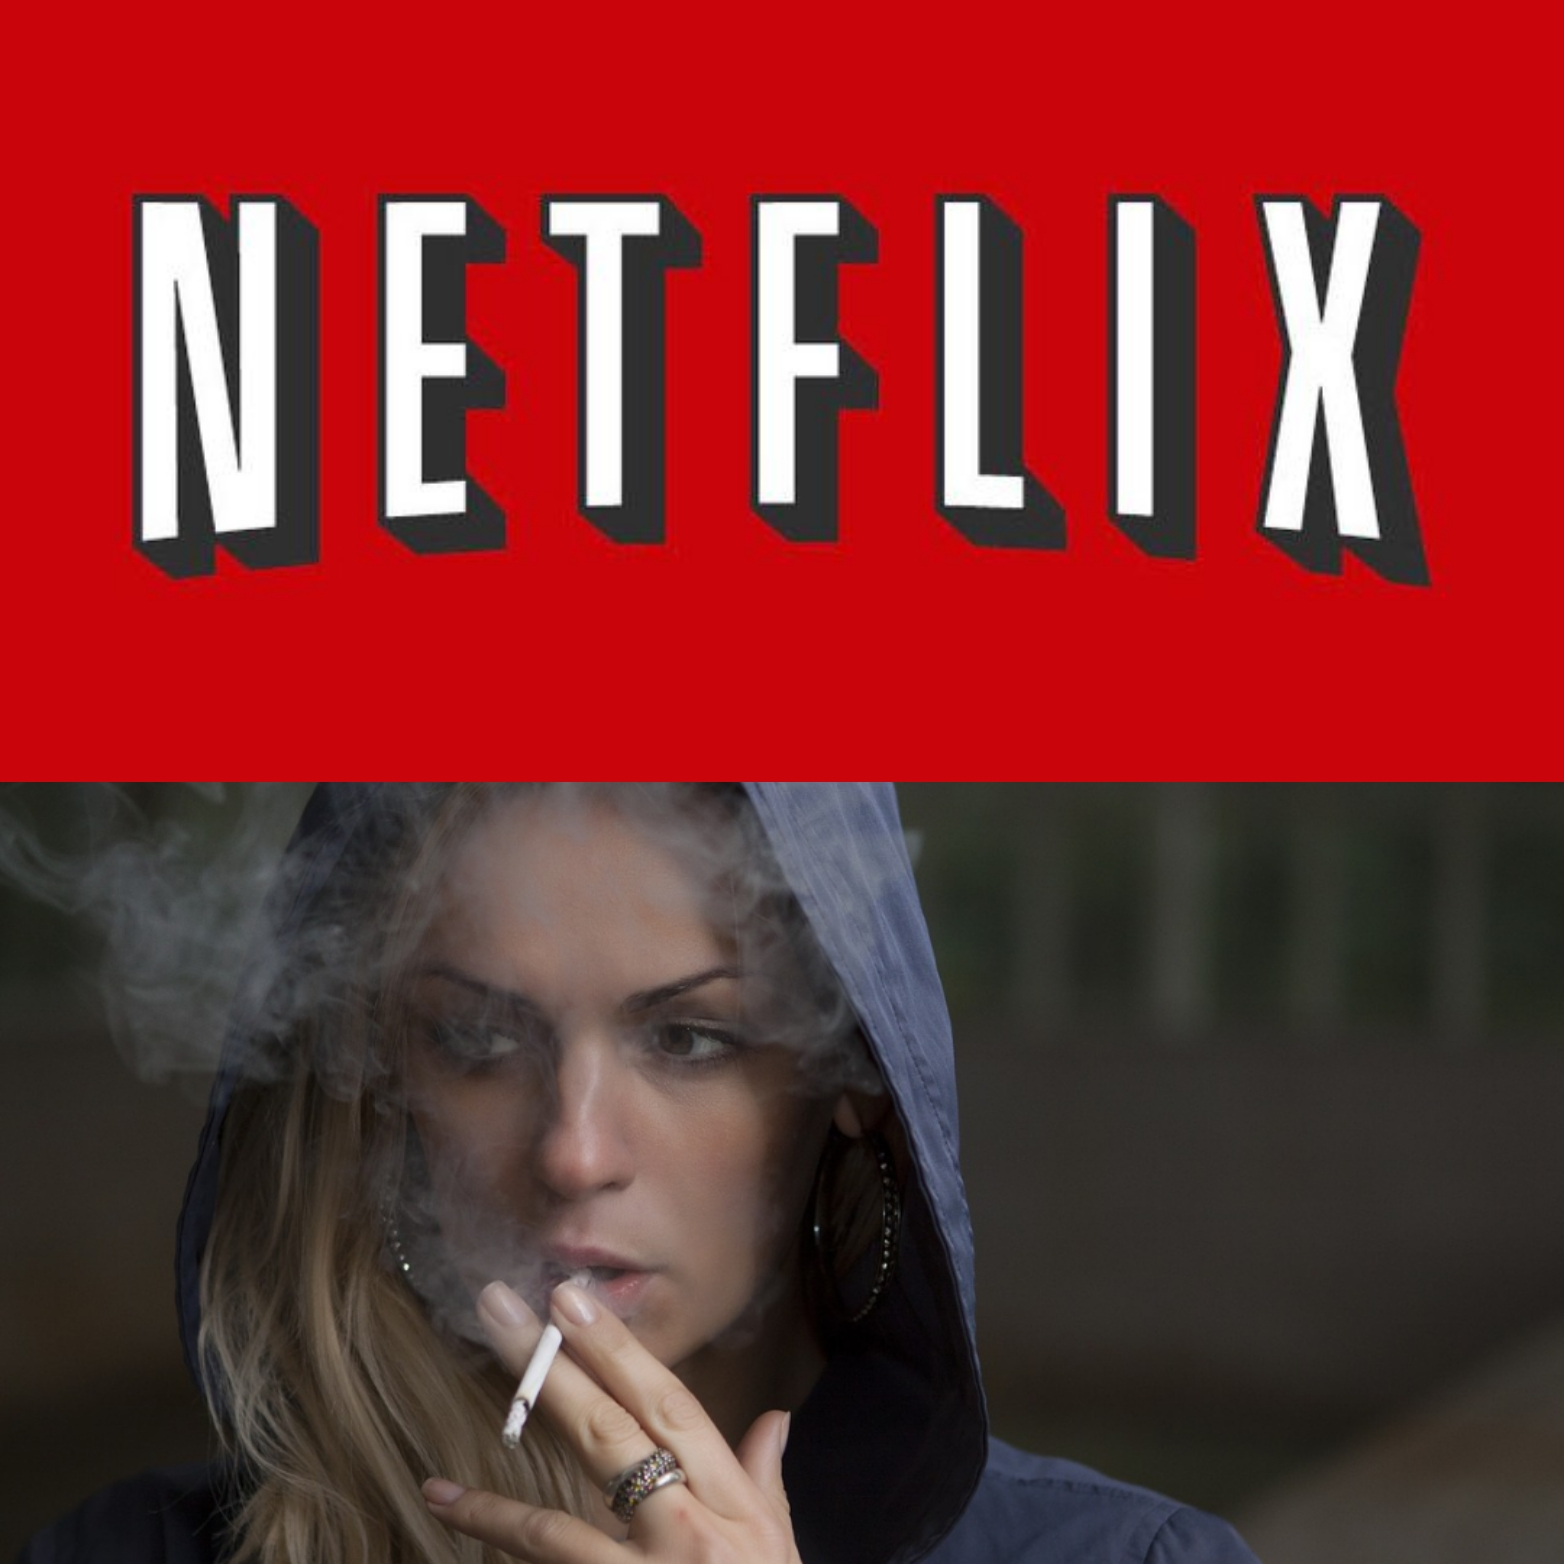 Netflix Butting Out on Smoking